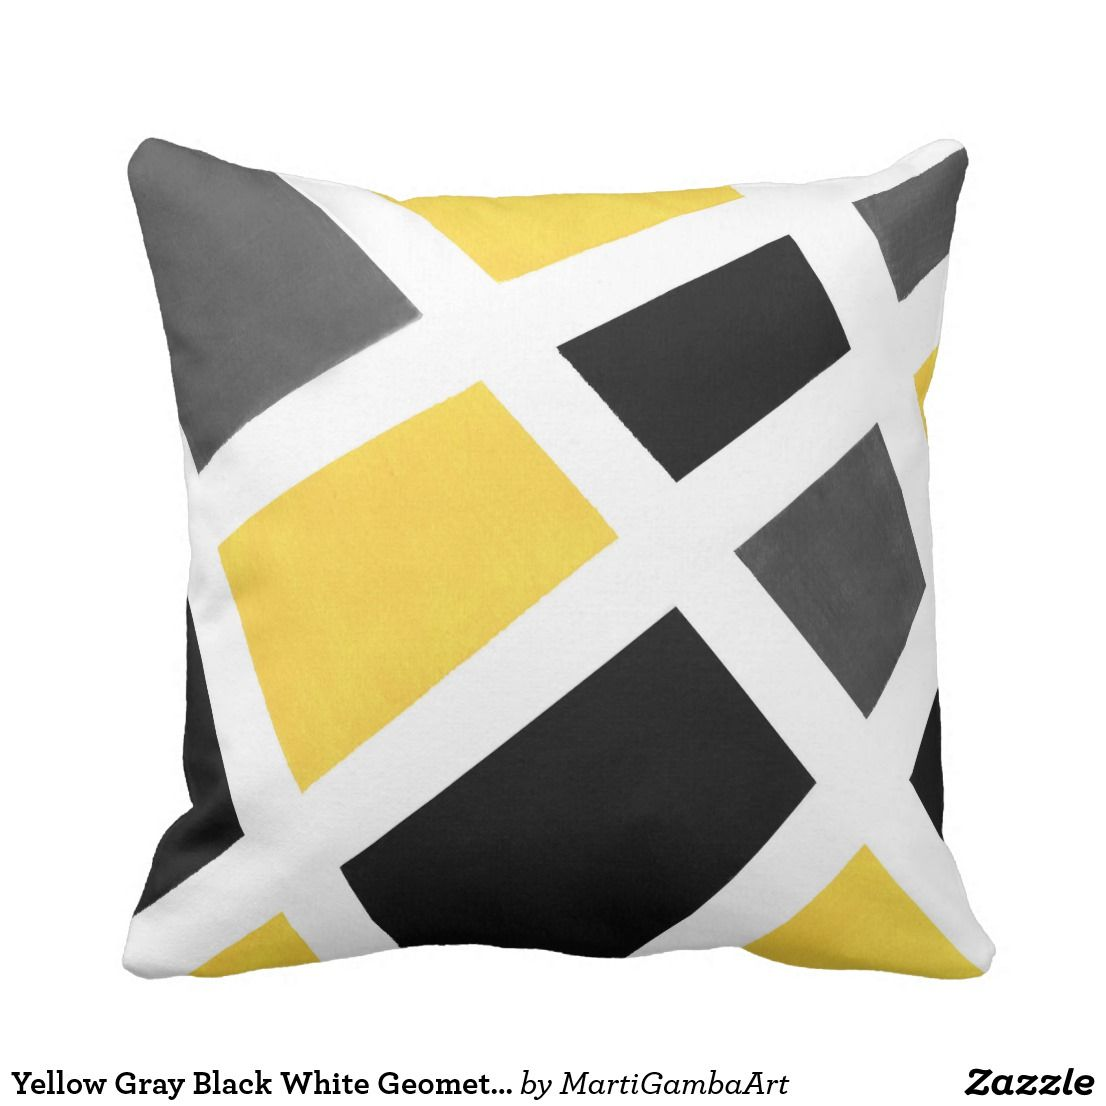 Yellow Gray Black White Geometric Throw Pillow Zazzle Com In 2020 Geometric Throw Pillows Throw Pillows Geometric Throws